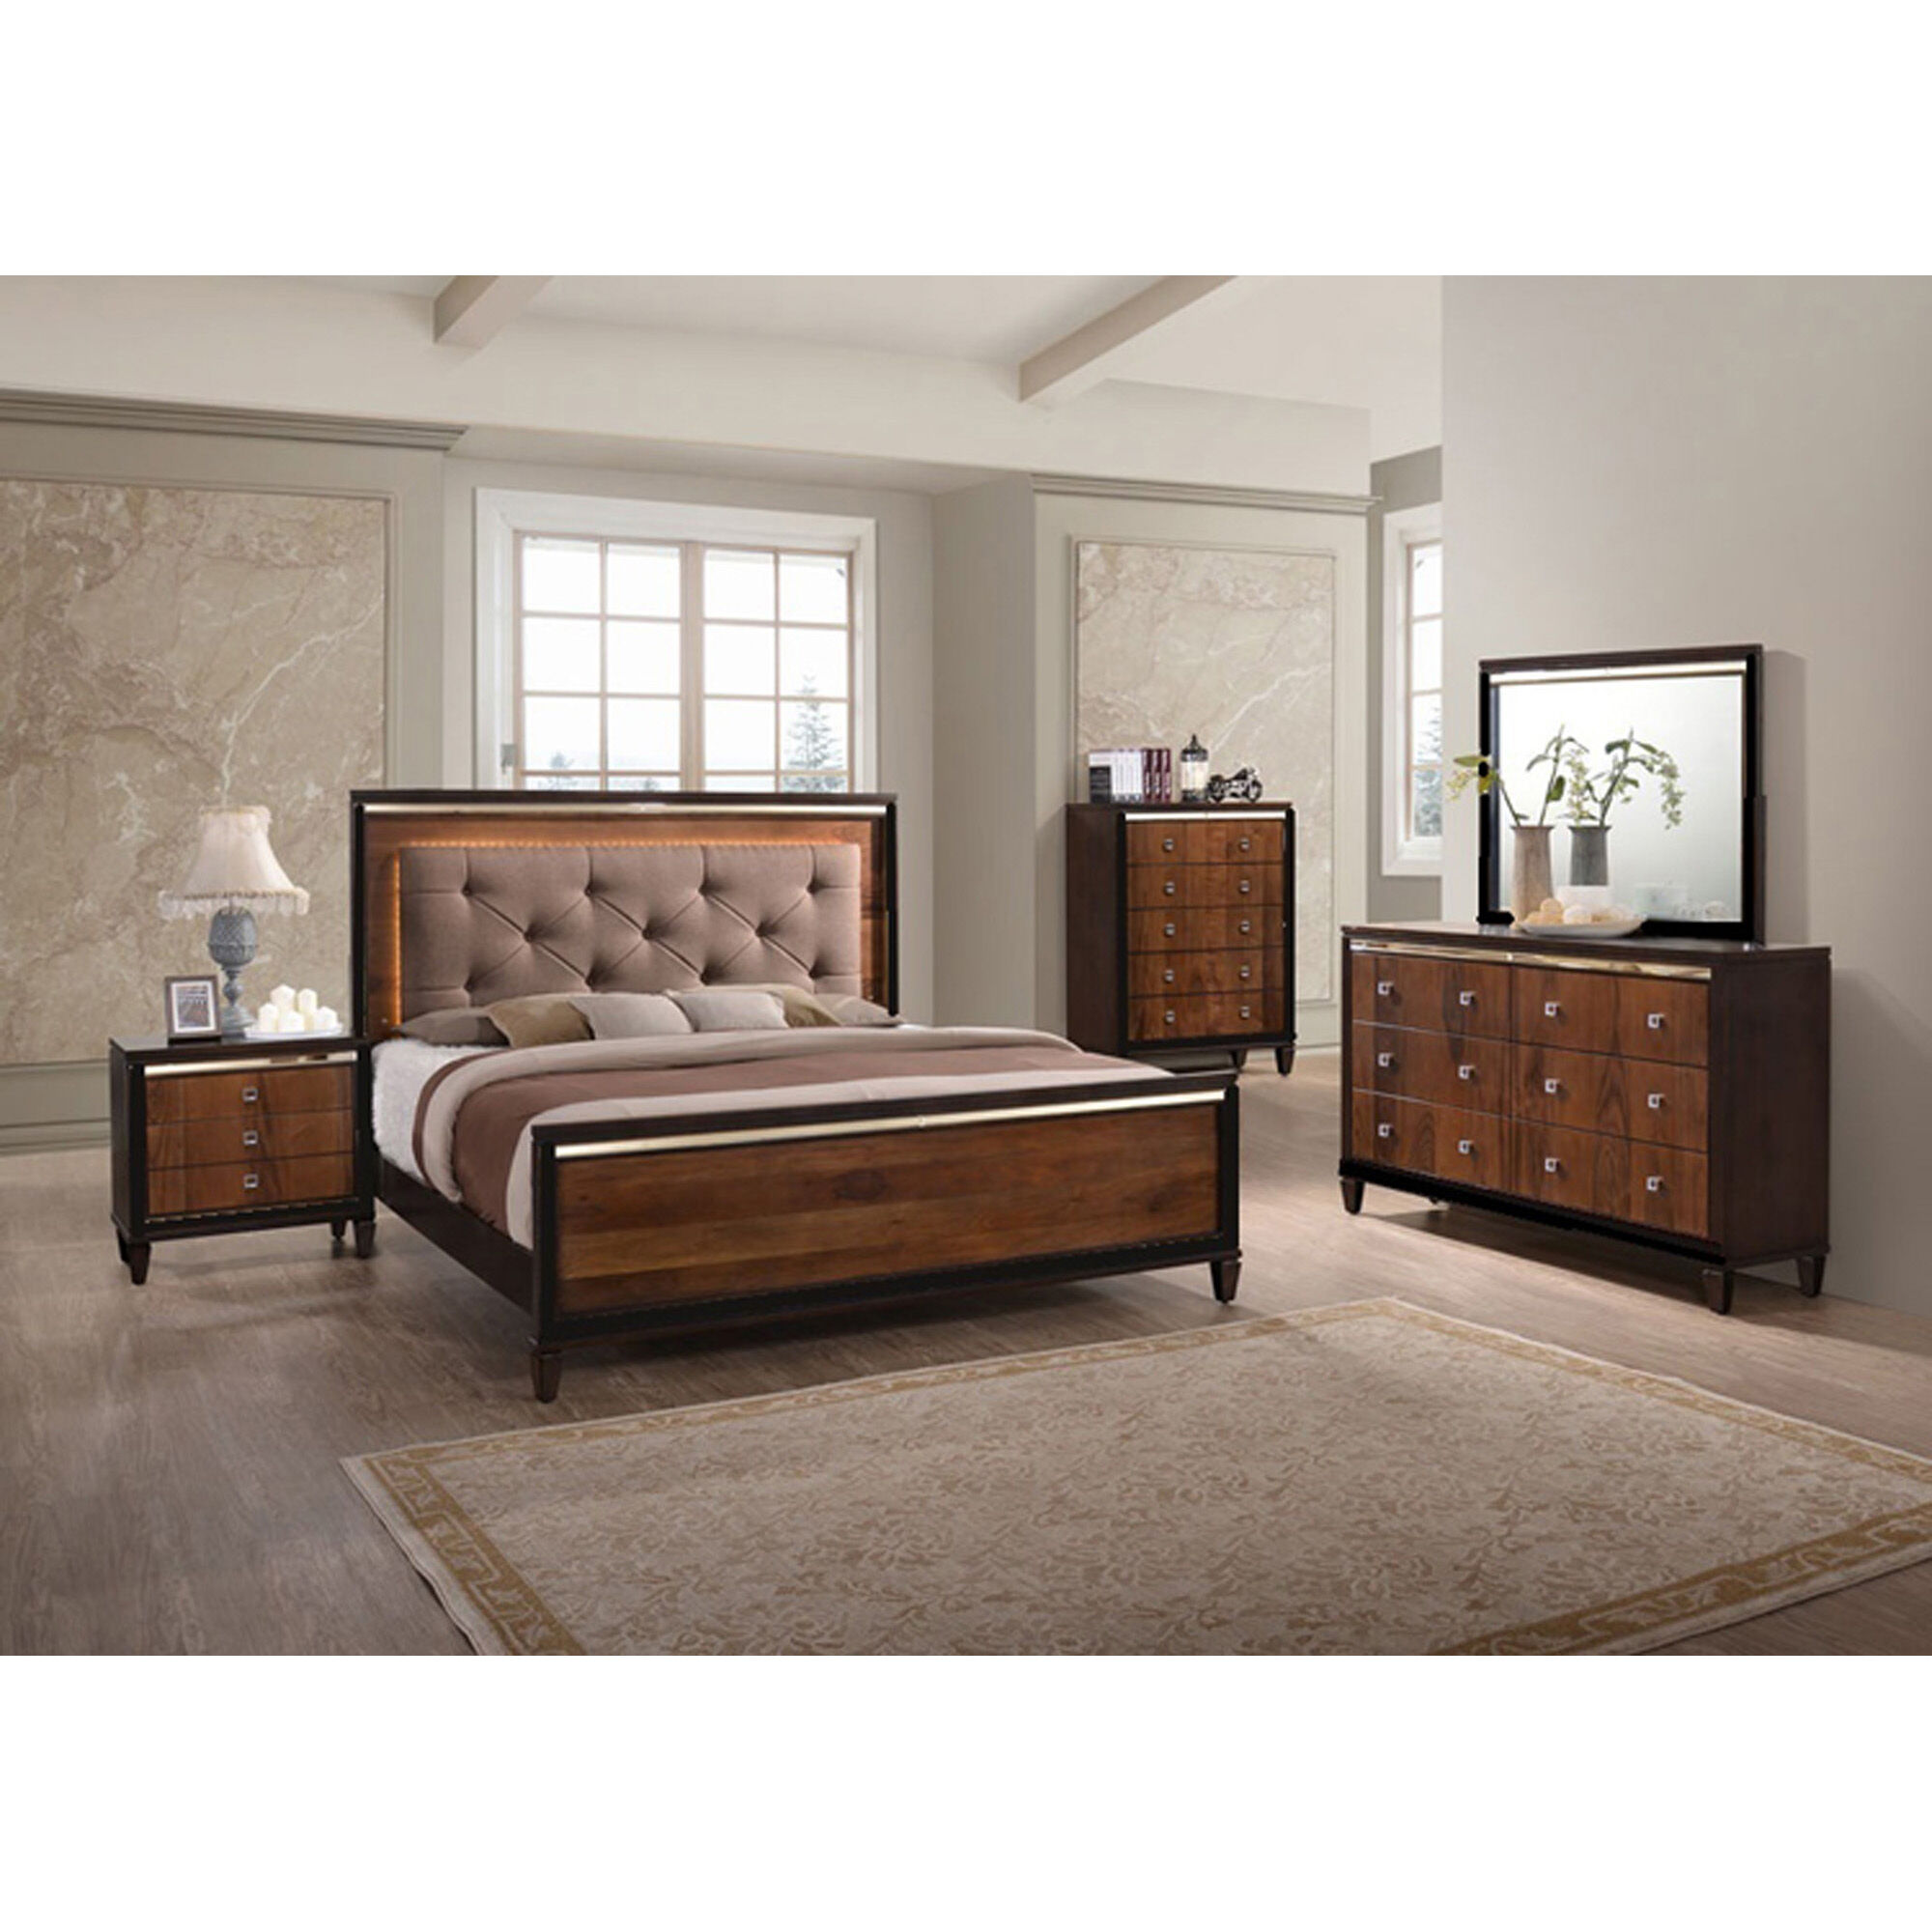 Excellent Bedroom Set Furniture Painting